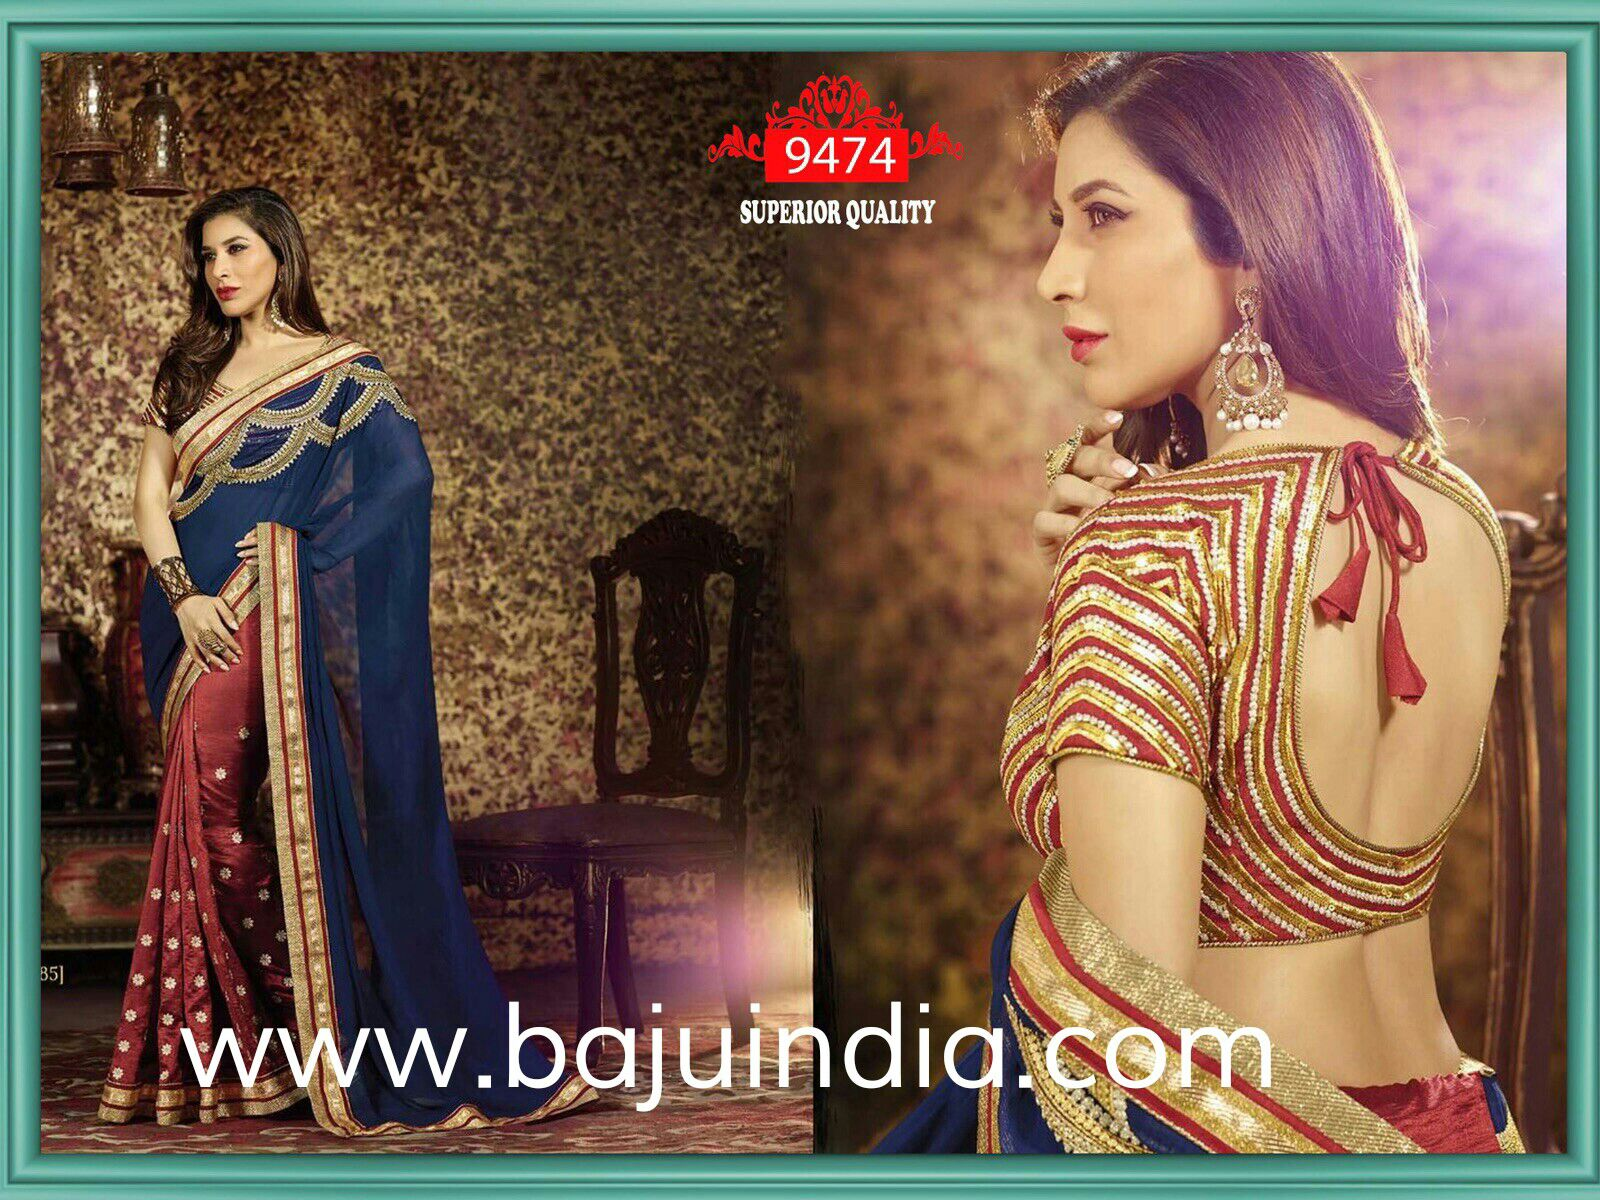 Baju India Muslim - Baju India Modern - Baju Khas India - Baju Adat India - Sari India Terbaru - Sari India Muslim - Baju Kerajaan India - Baju Salwaar India - SQ 9474